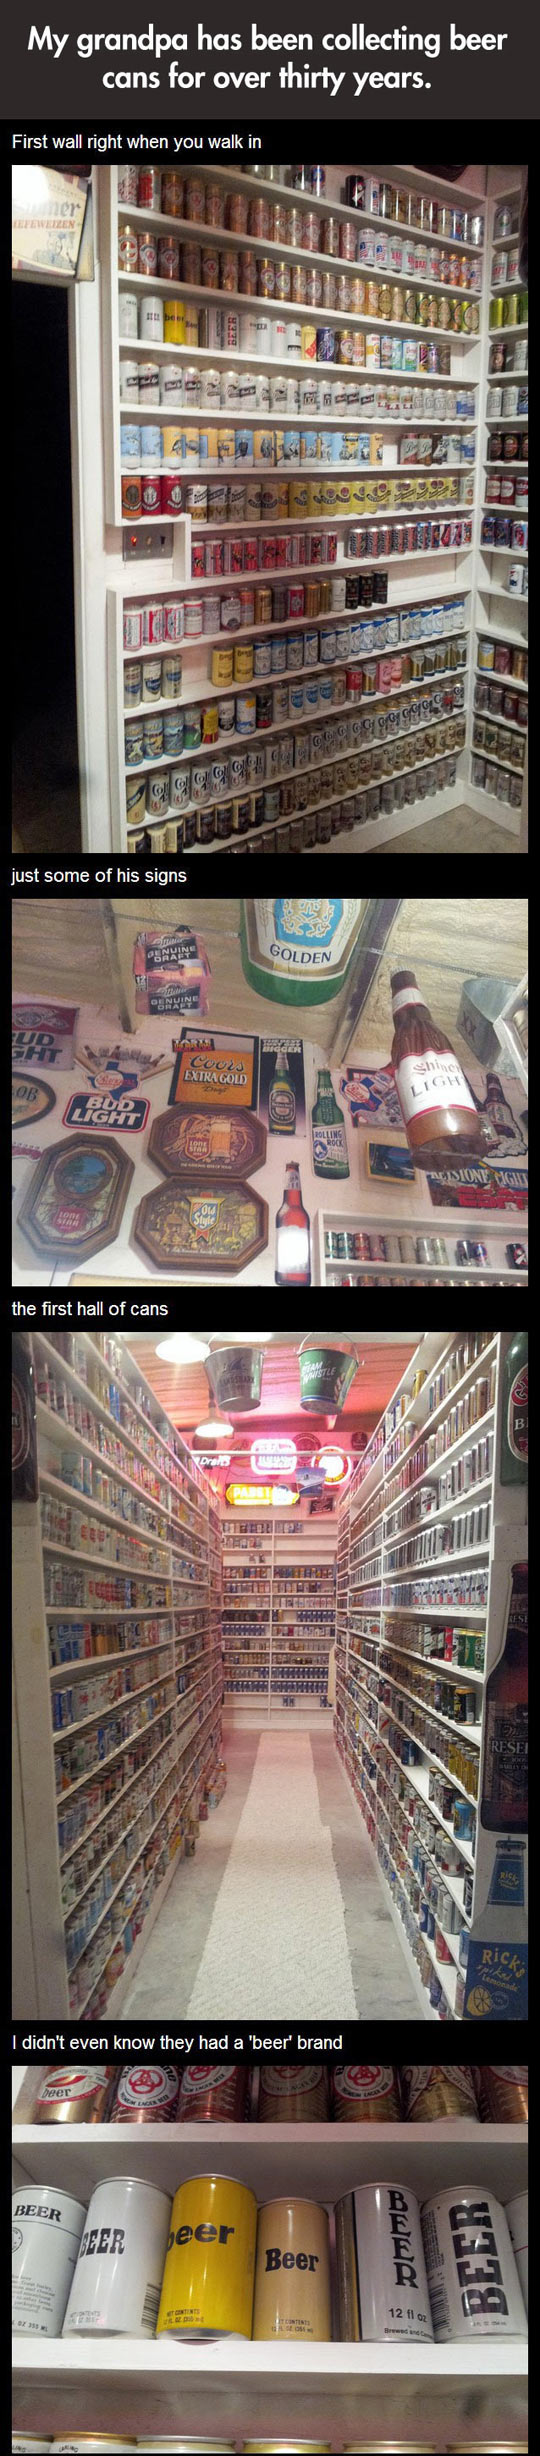 Epic beer cans collection...